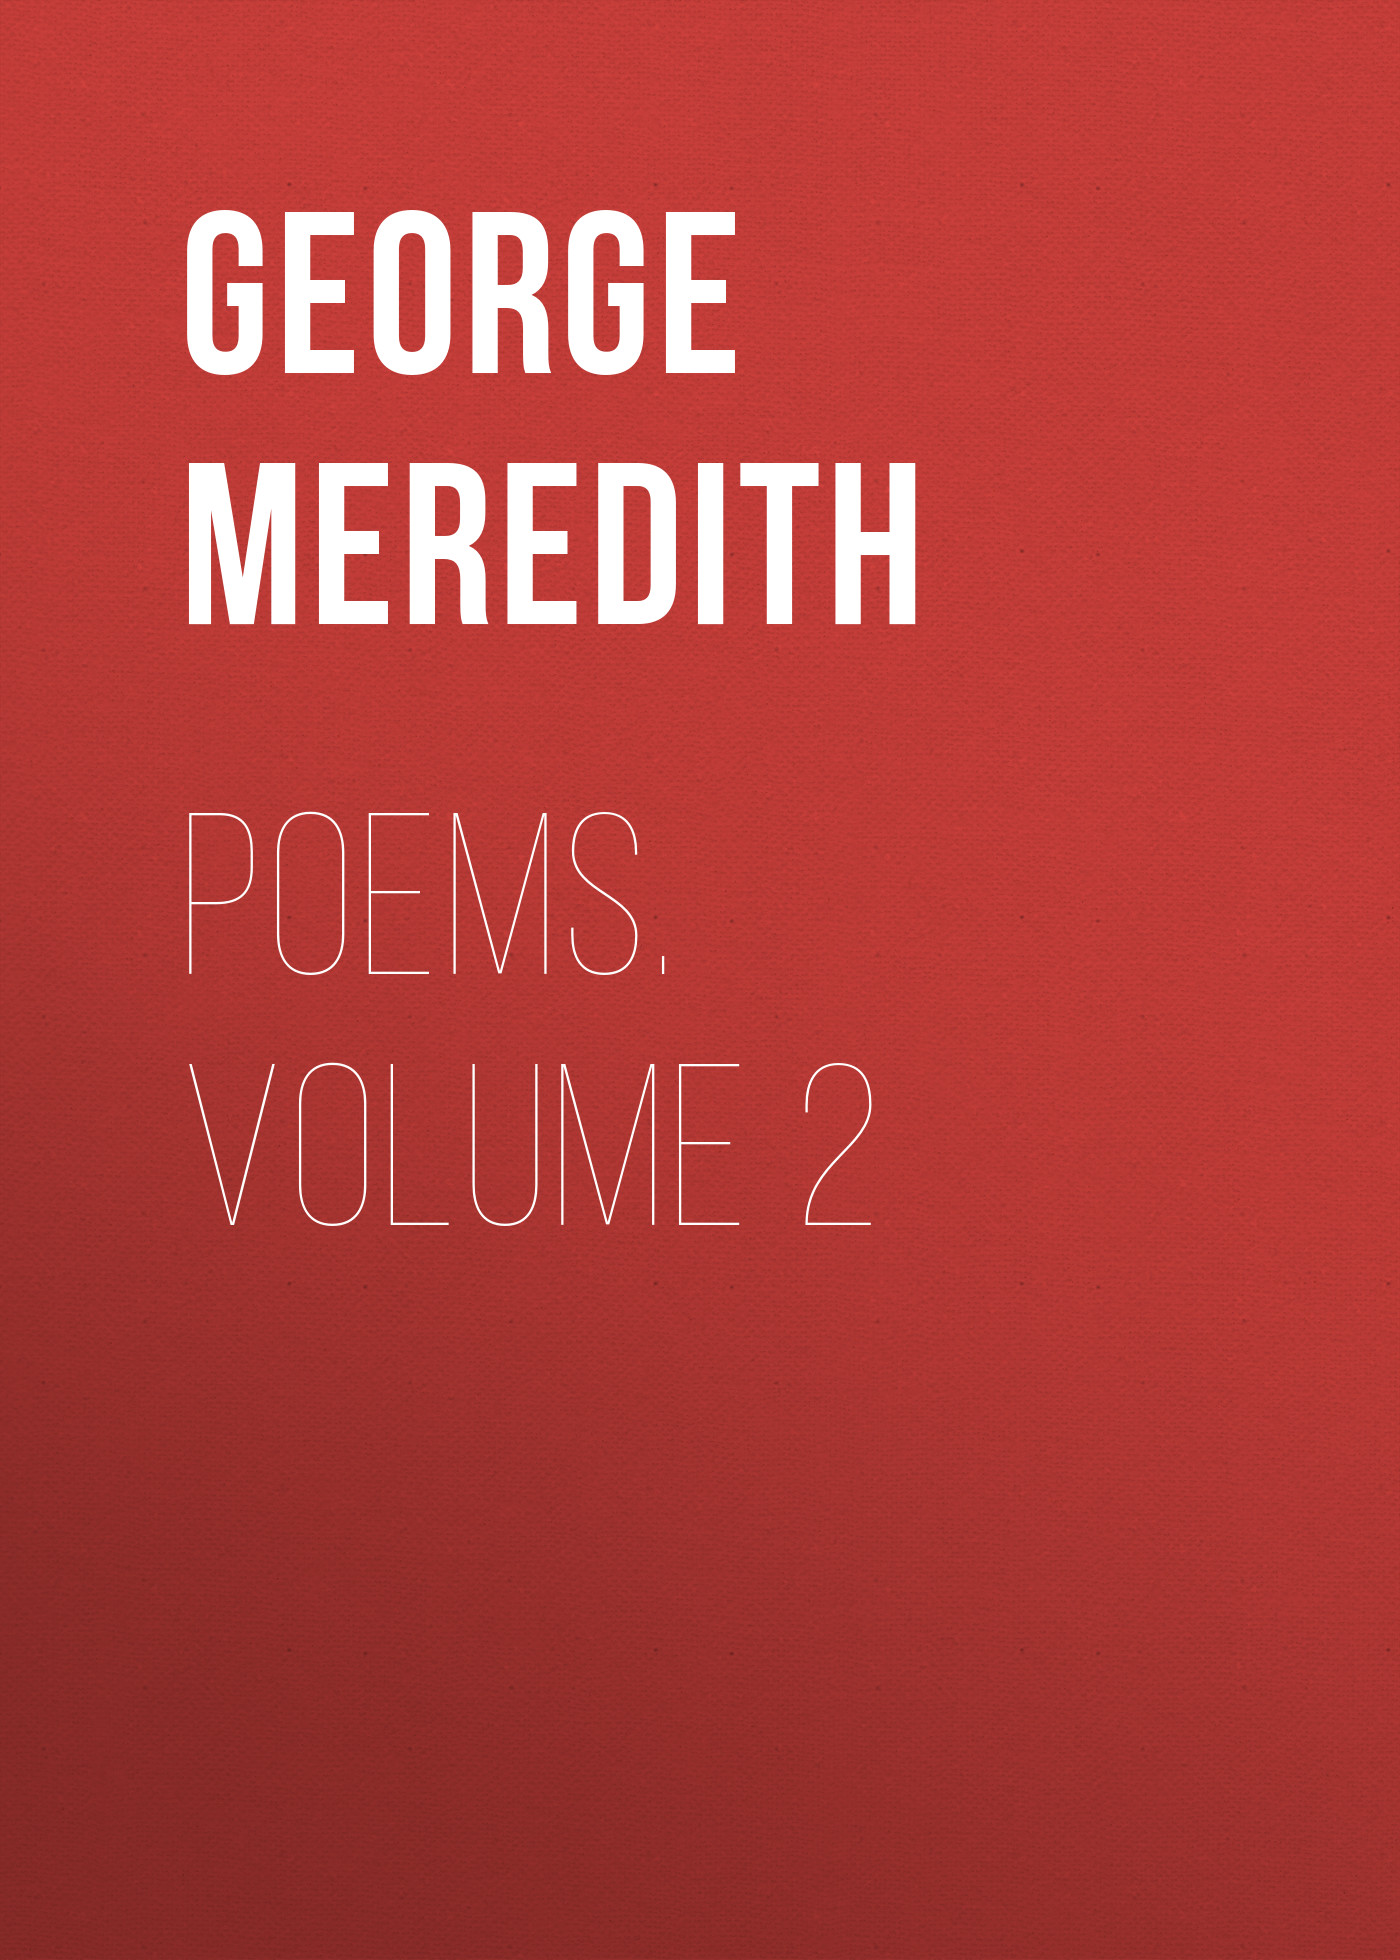 George Meredith Poems. Volume 2 charmed volume 2